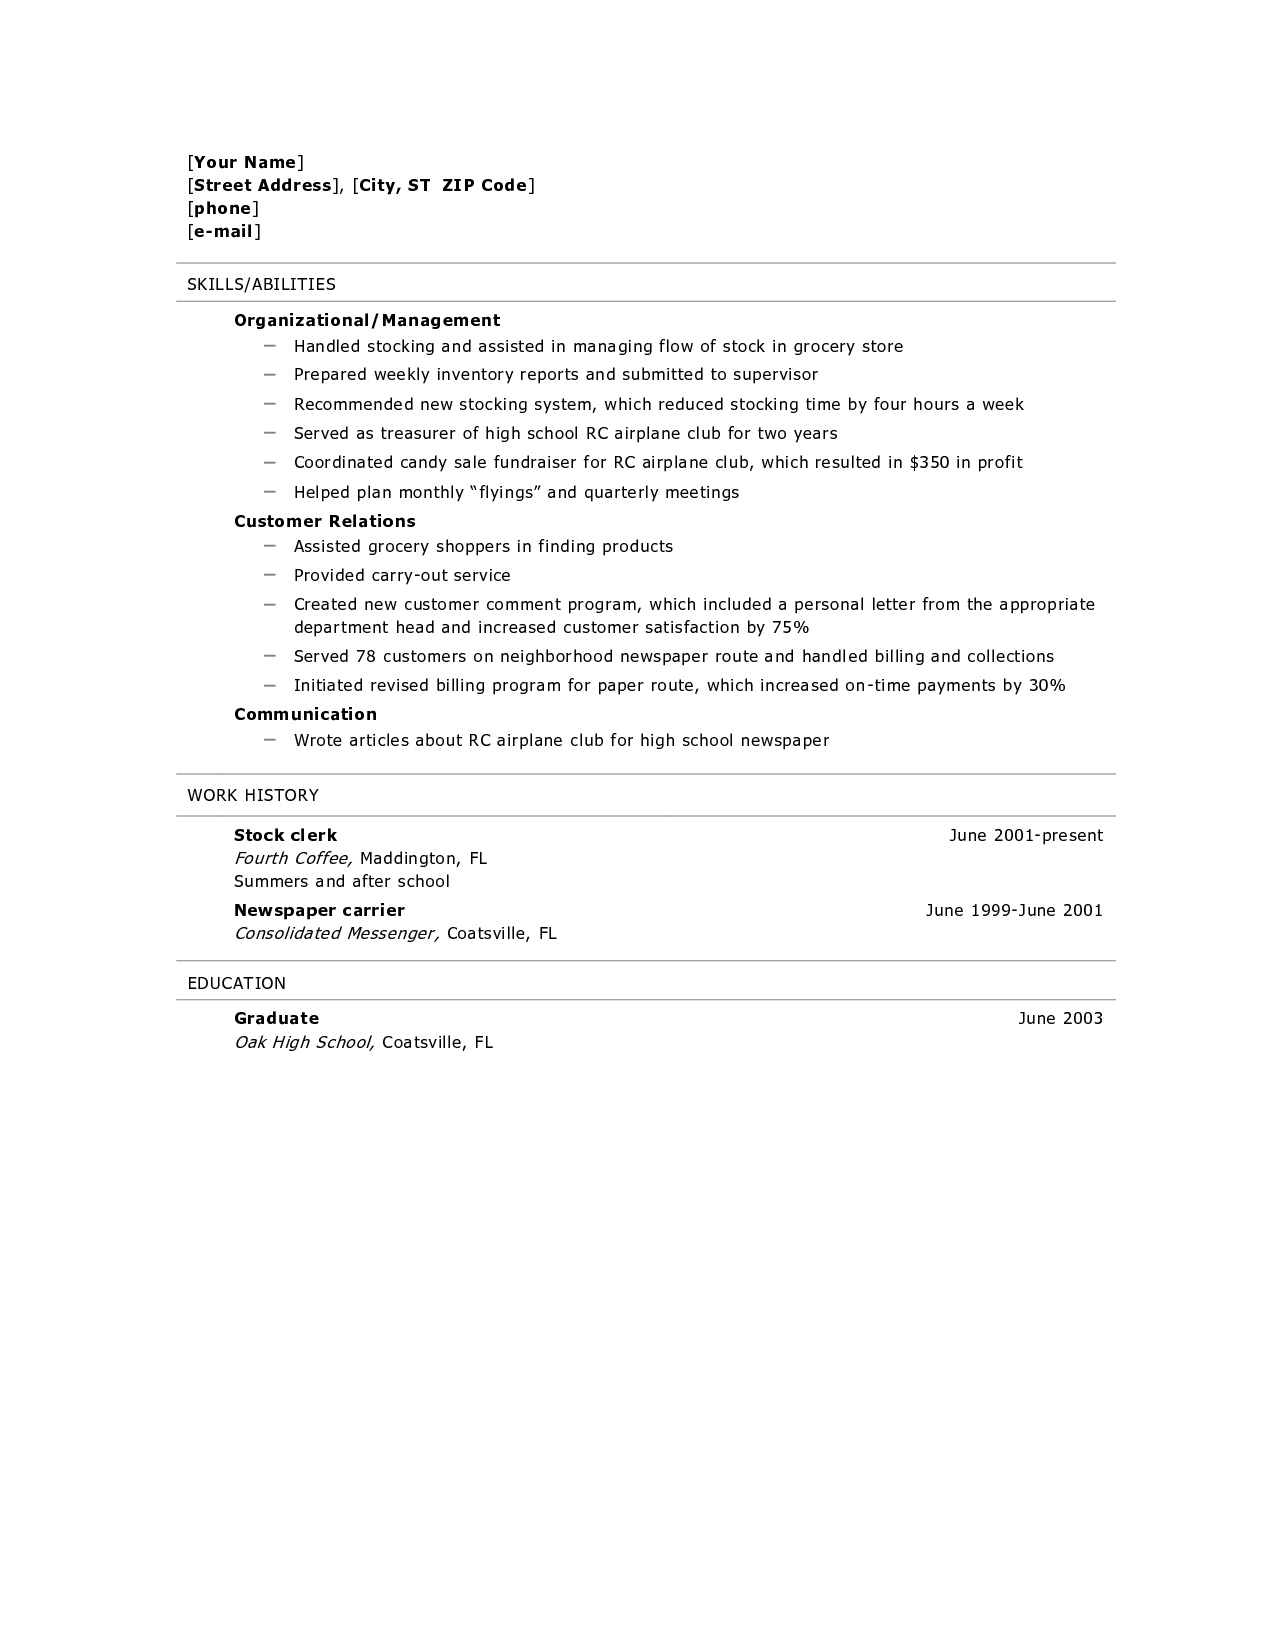 resume for high school graduate resume builder resume templates httpwww - Resume Template For High School Graduate